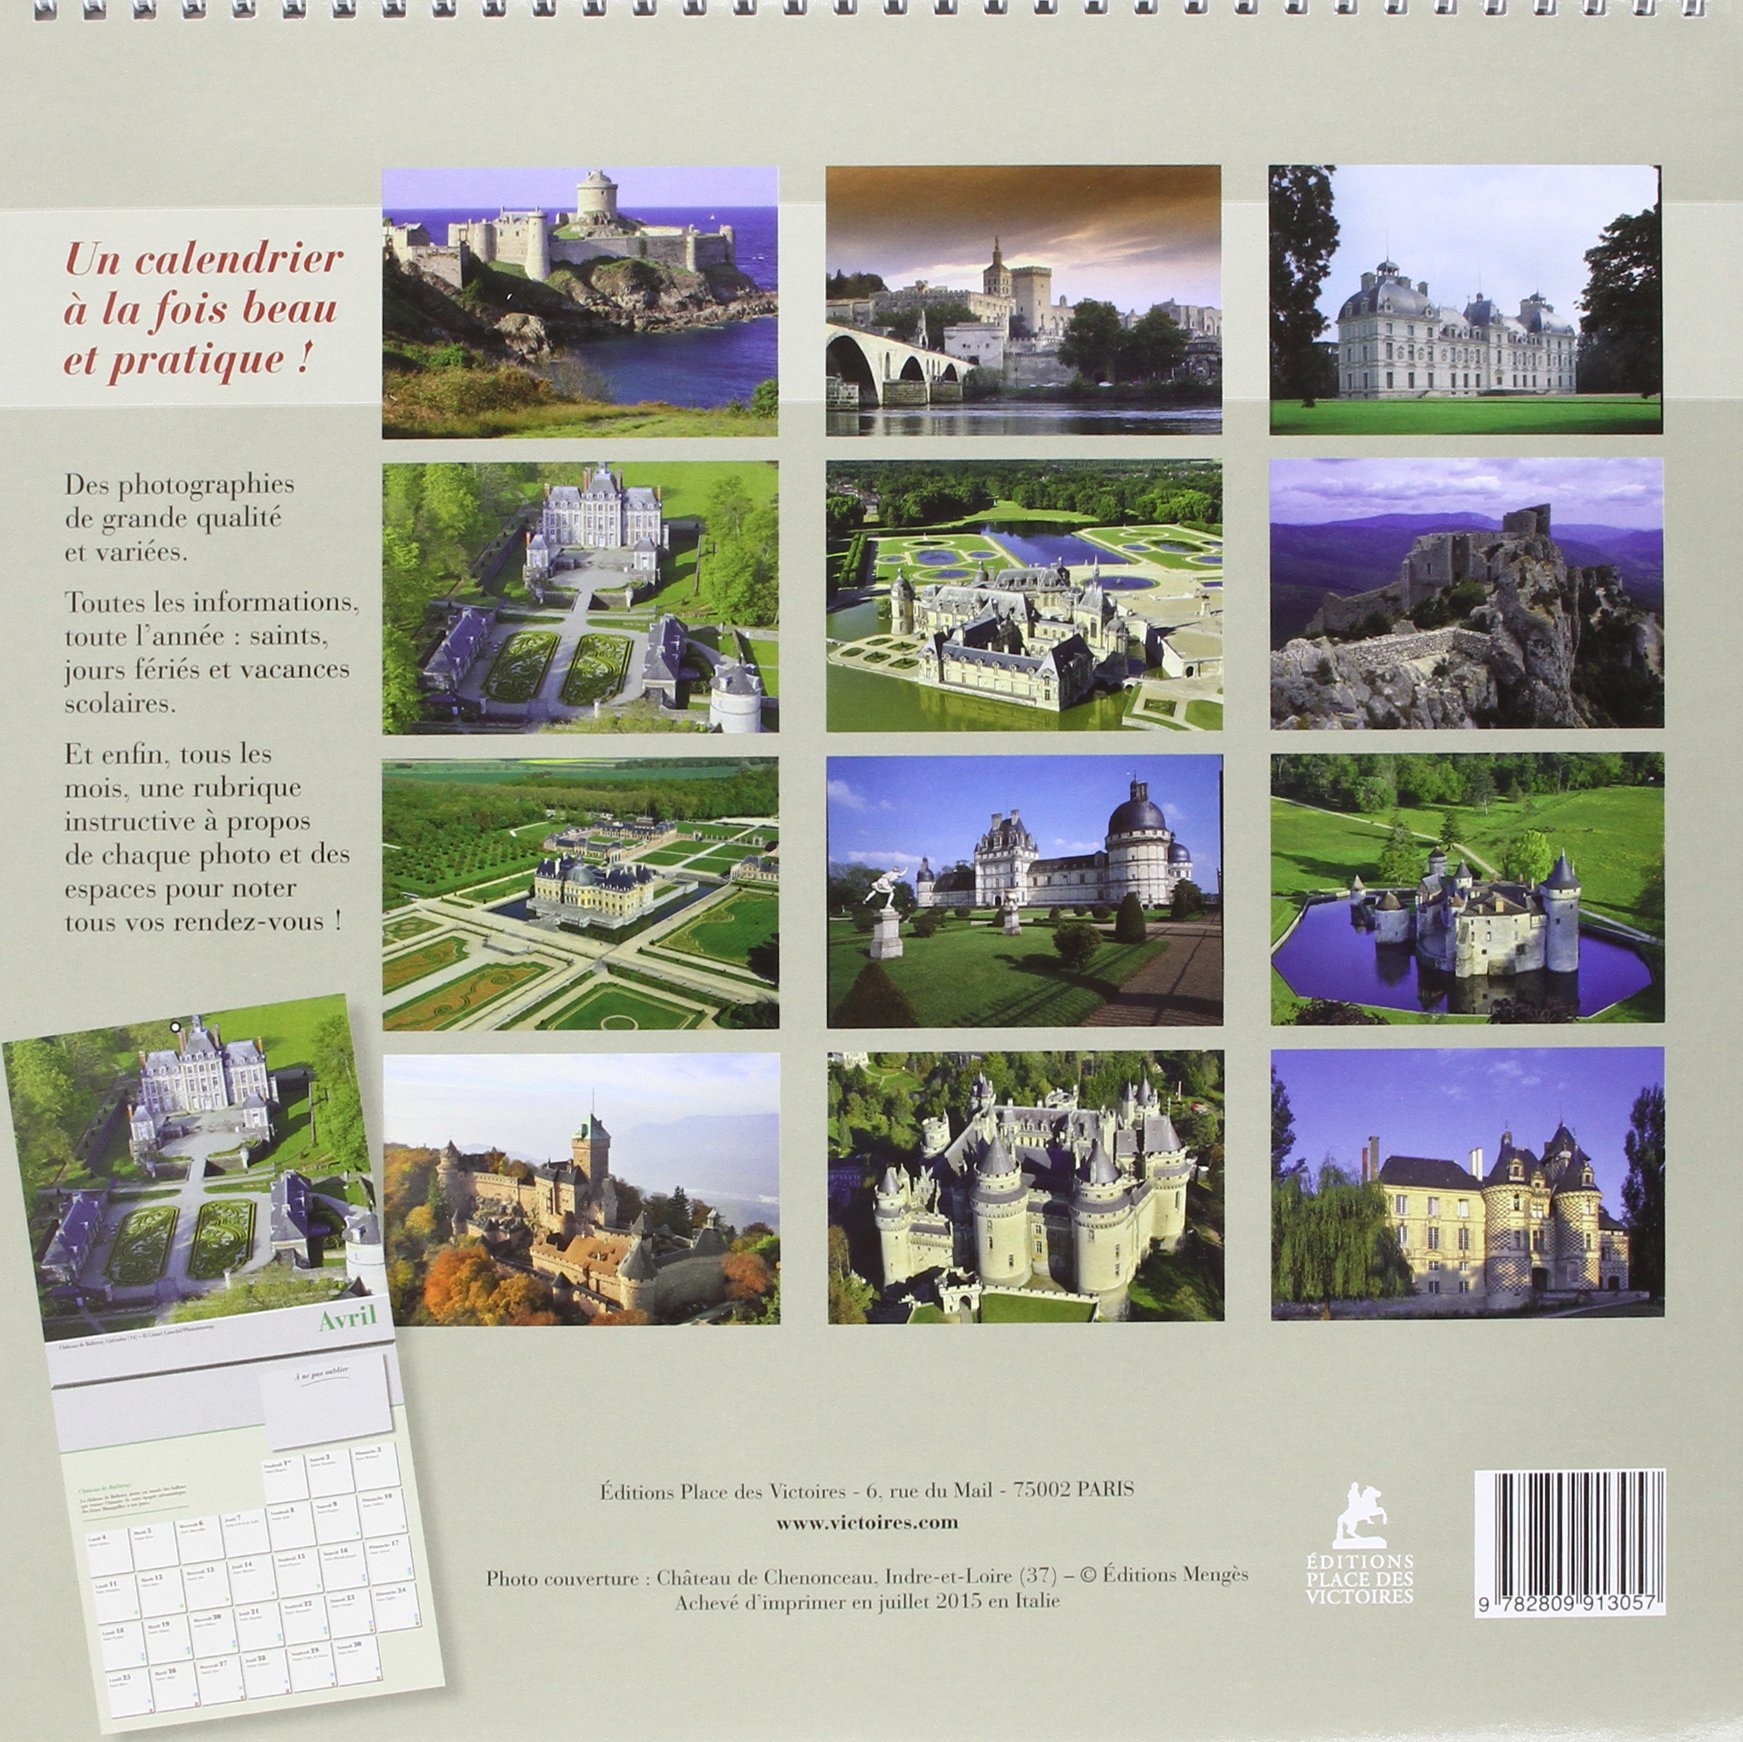 Impressionnant Editions Place Des Victoires #6: CHATEAUX DE FRANCE CALENDRIER 2016 [ Castles Of France Calendar ] (French  Edition): Collectif, Place Des Victoires: 9782809913057: Amazon.com: Books